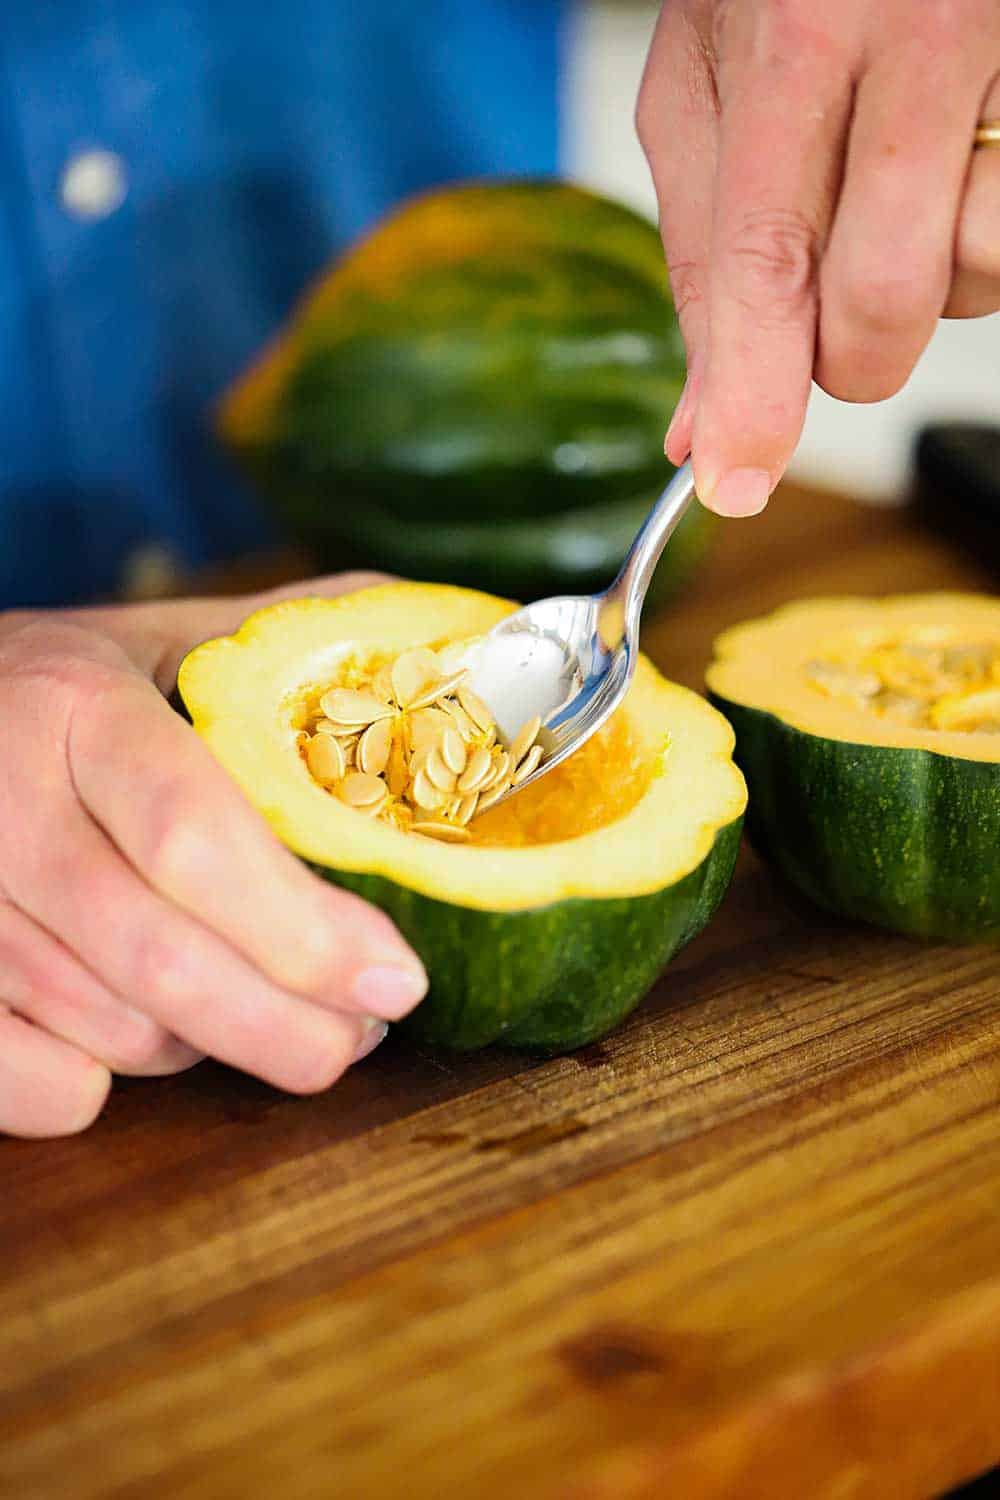 A person using a spoon to remove seeds from the center of an acorn squash that has been cut in half.